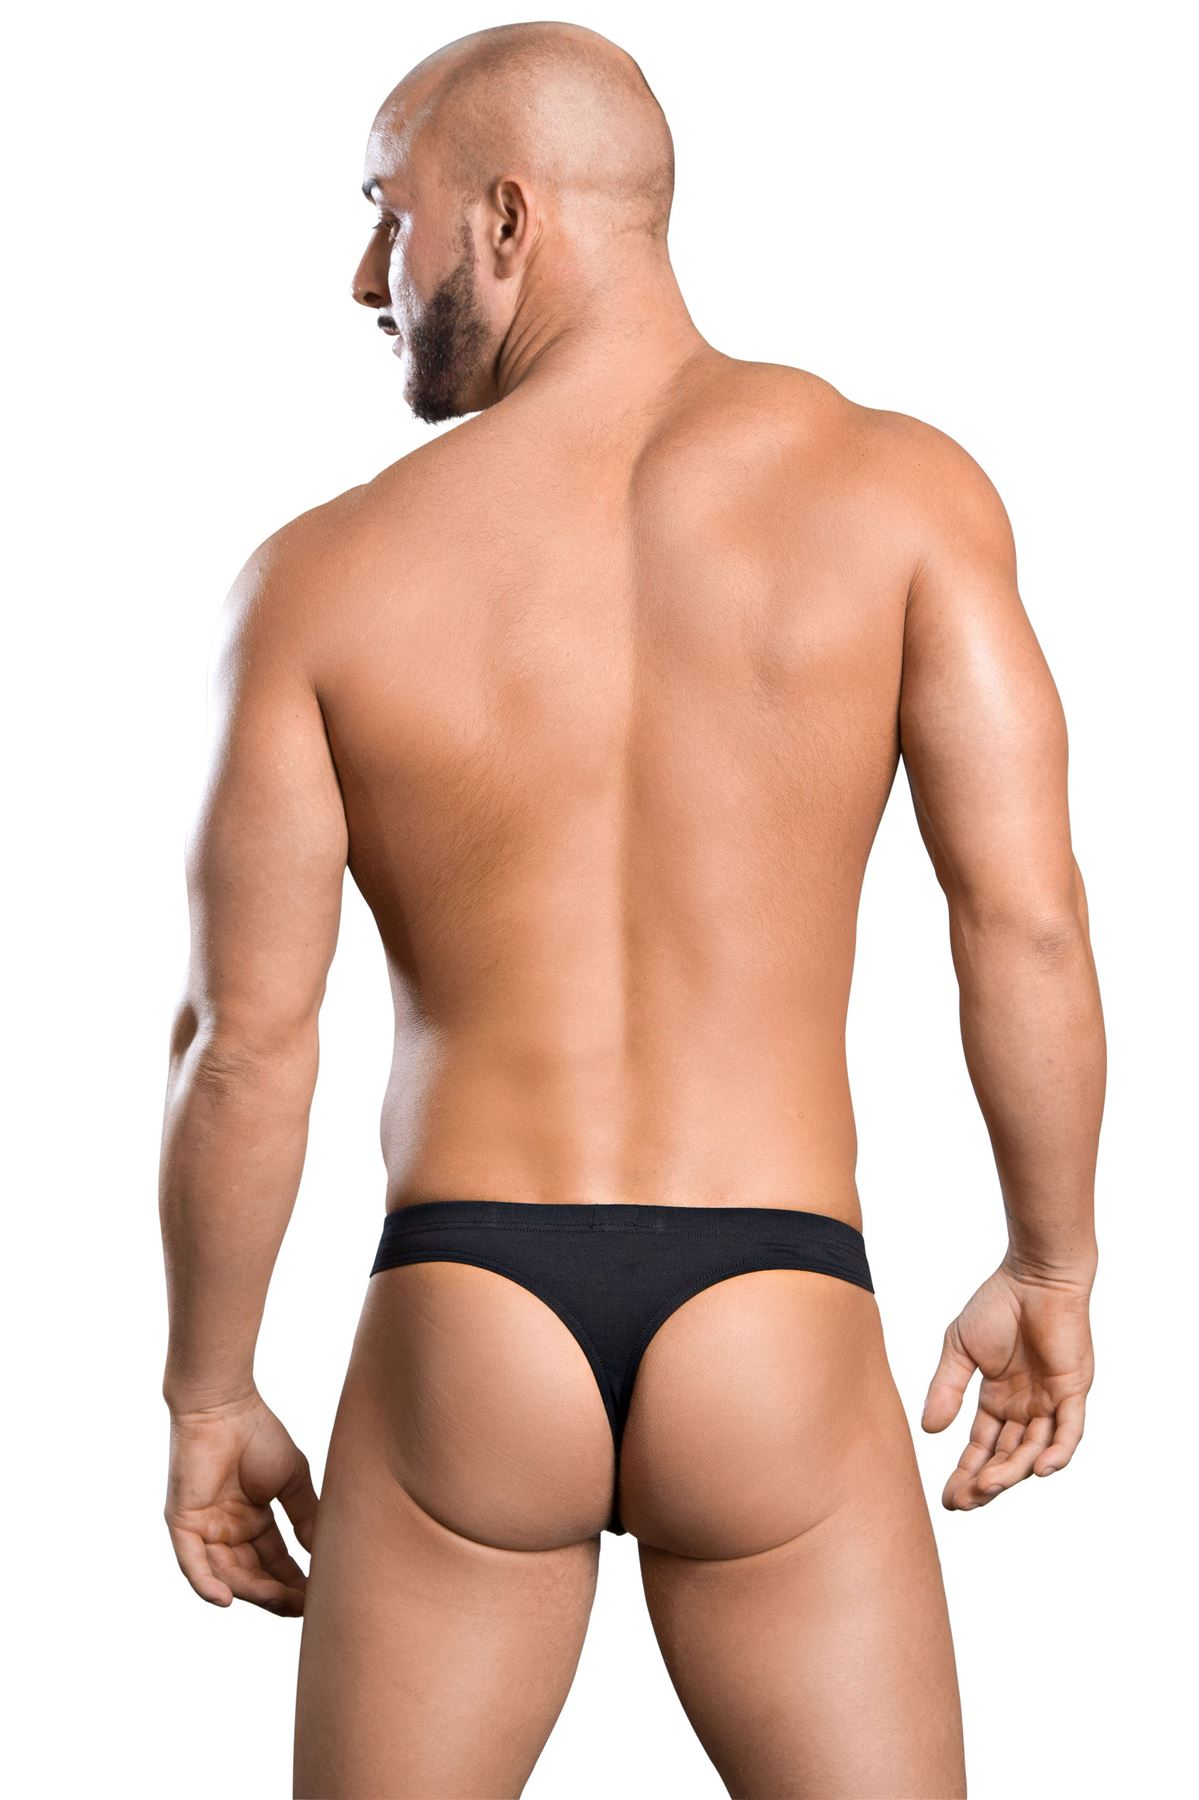 1ba3d828341 HOM Men's Classic Cotton G-String Thong Underwear S-2XL Sexy Underwear